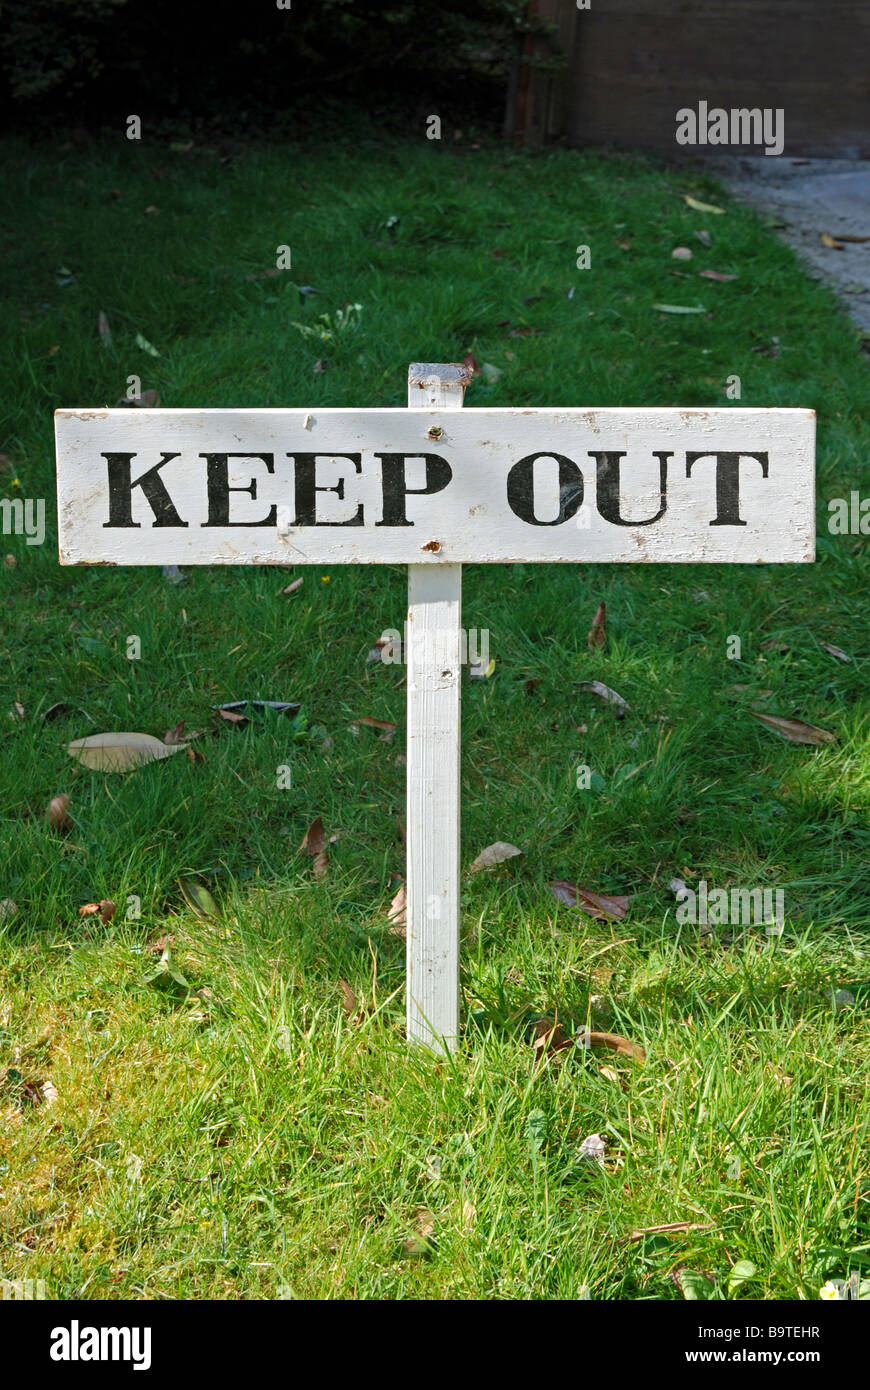 a wooden keep sign out on a lawn - Stock Image